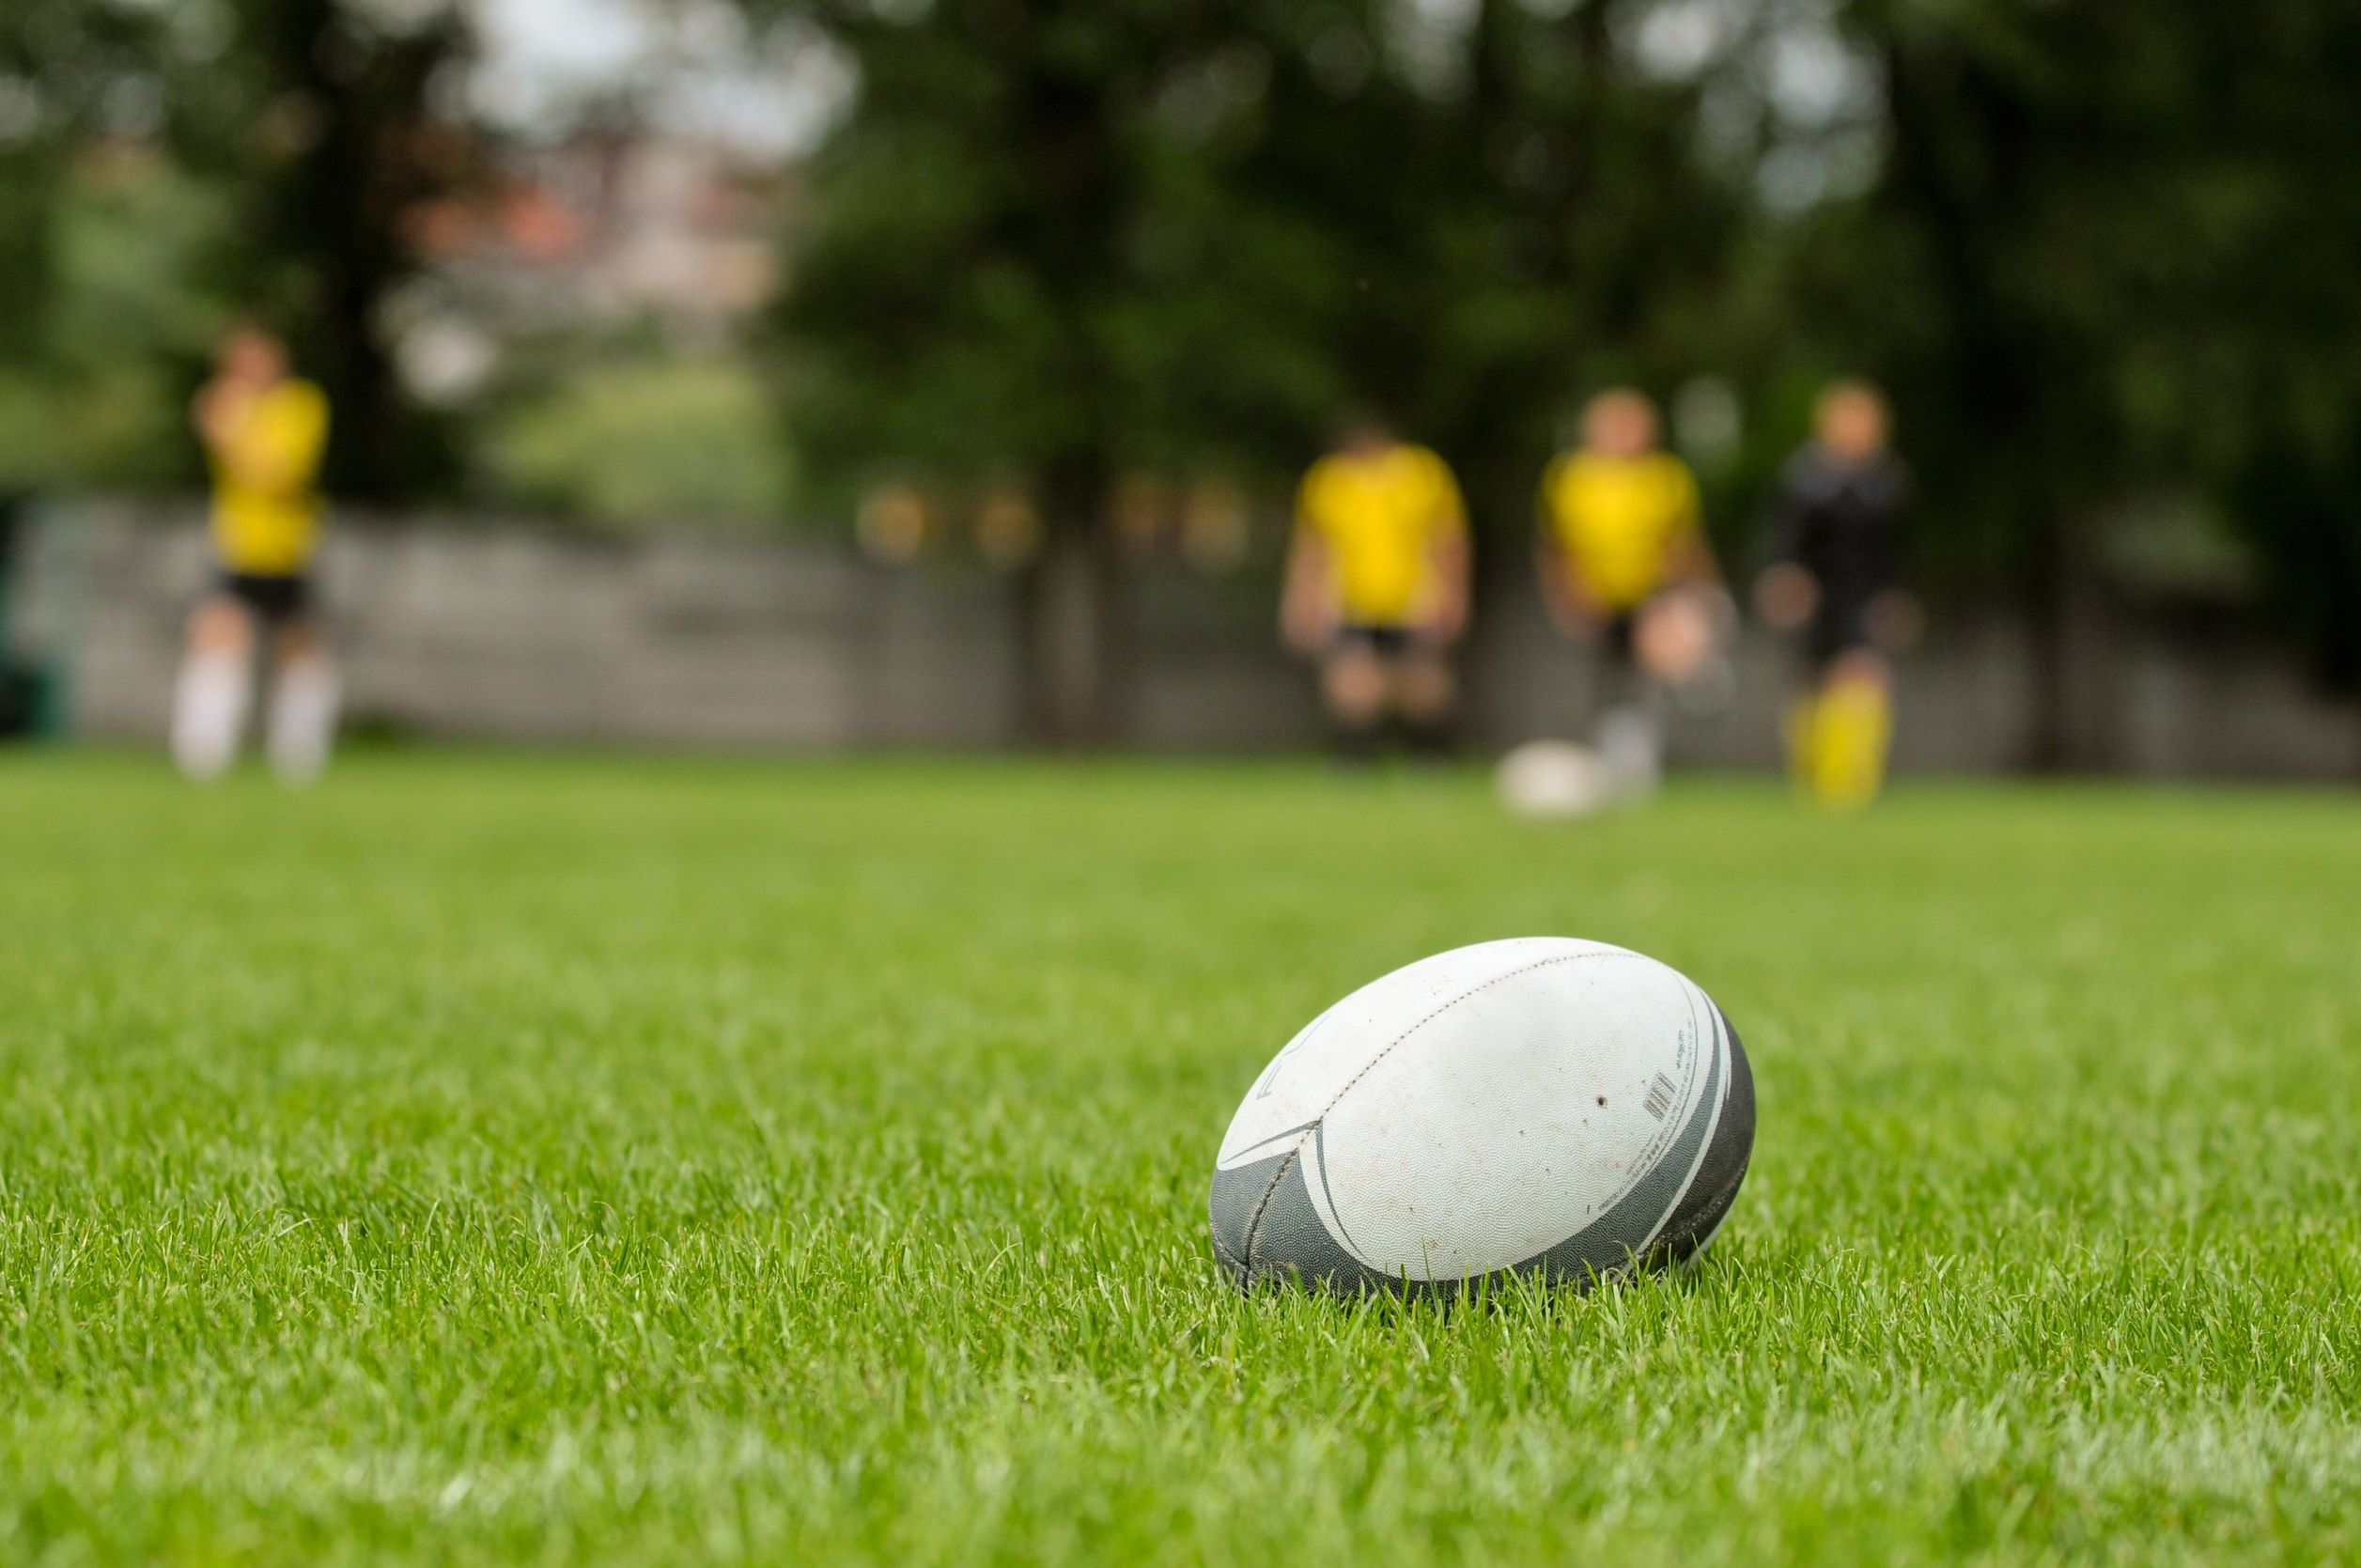 rugby-ball-on-field-grass-new-zealand